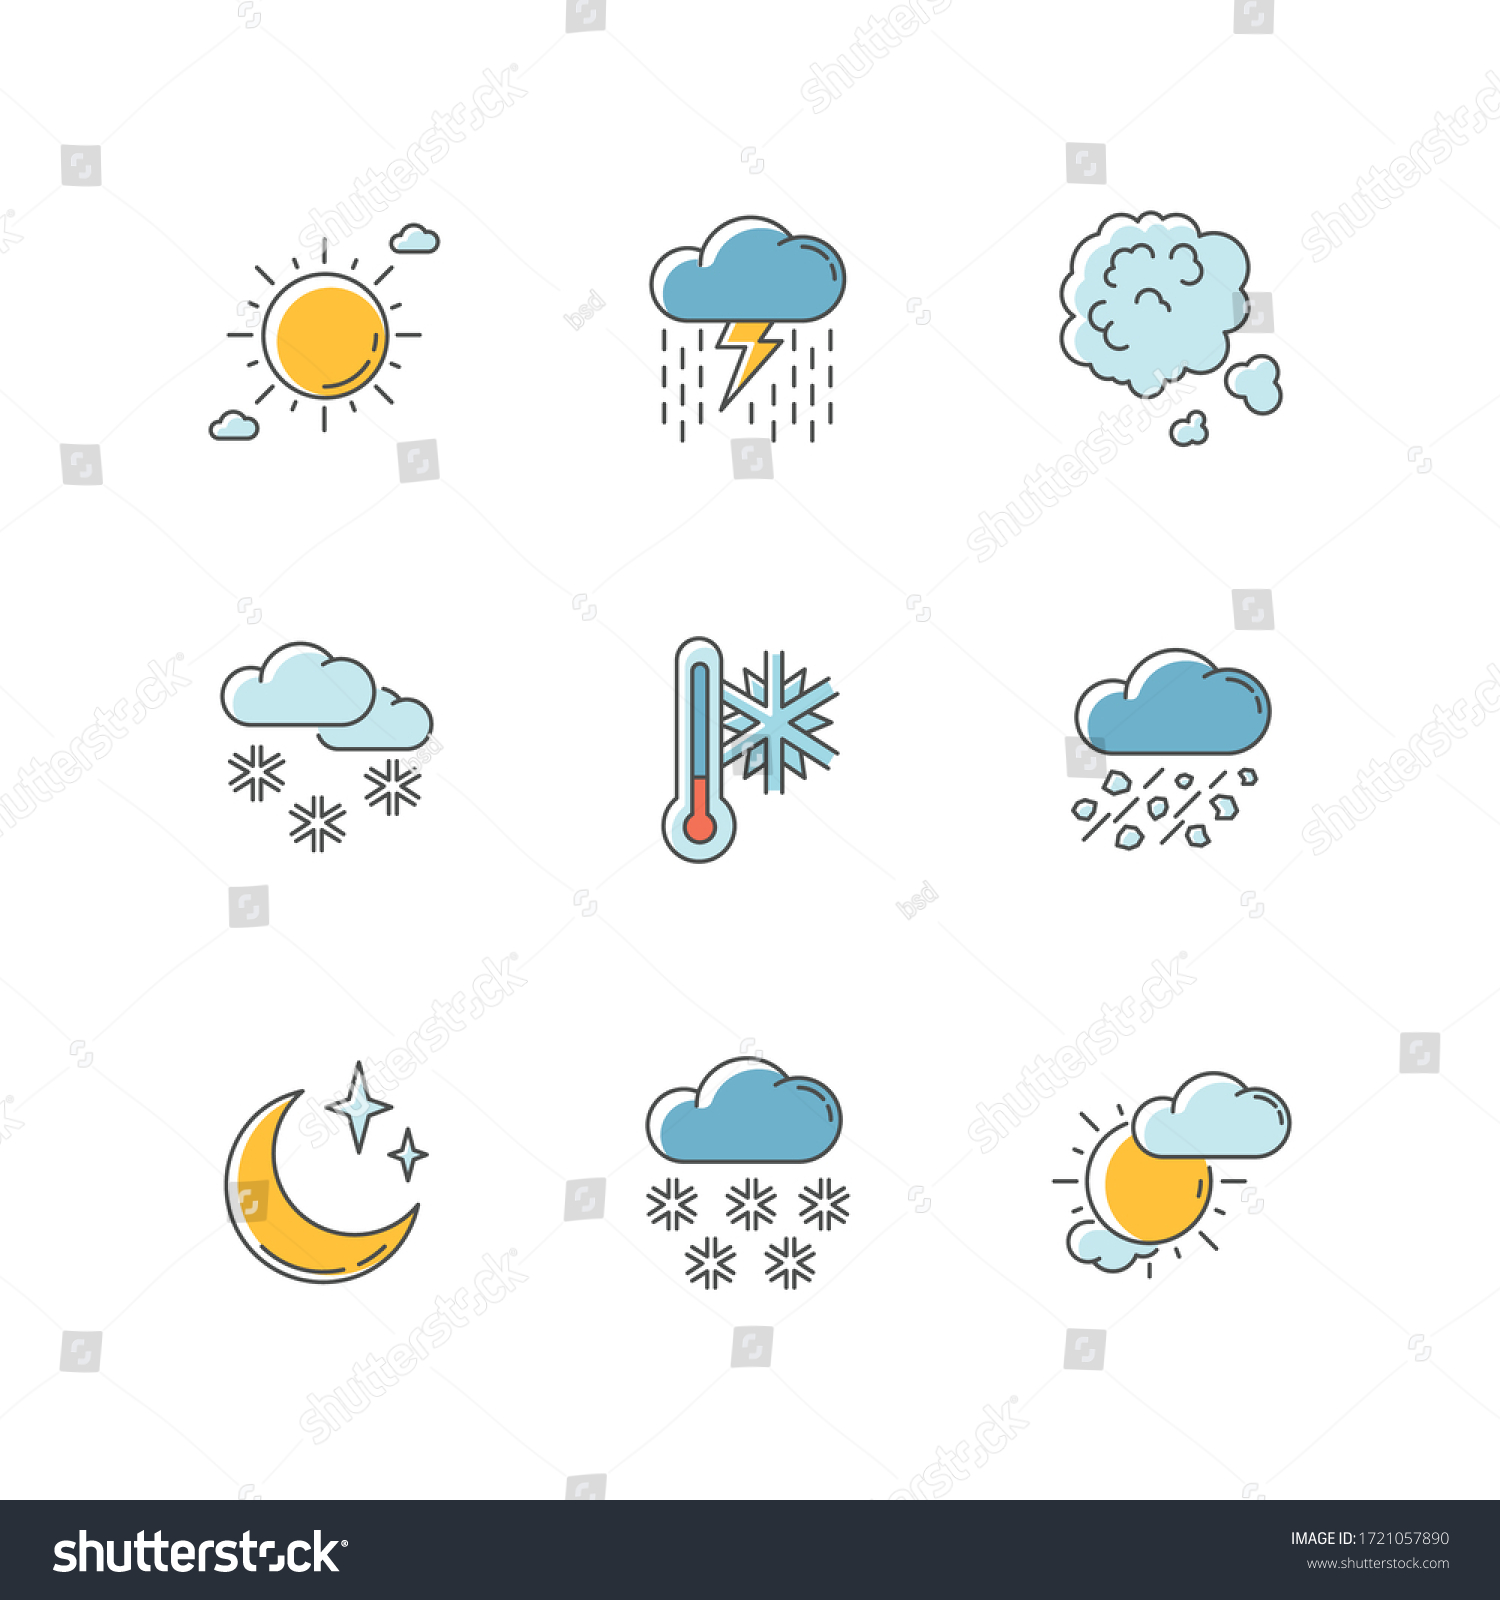 Sky clarity and precipitation RGB color icons set. Seasonal weather forecast, meteorological report. Atmosphere condition prediction. Isolated vector illustrations